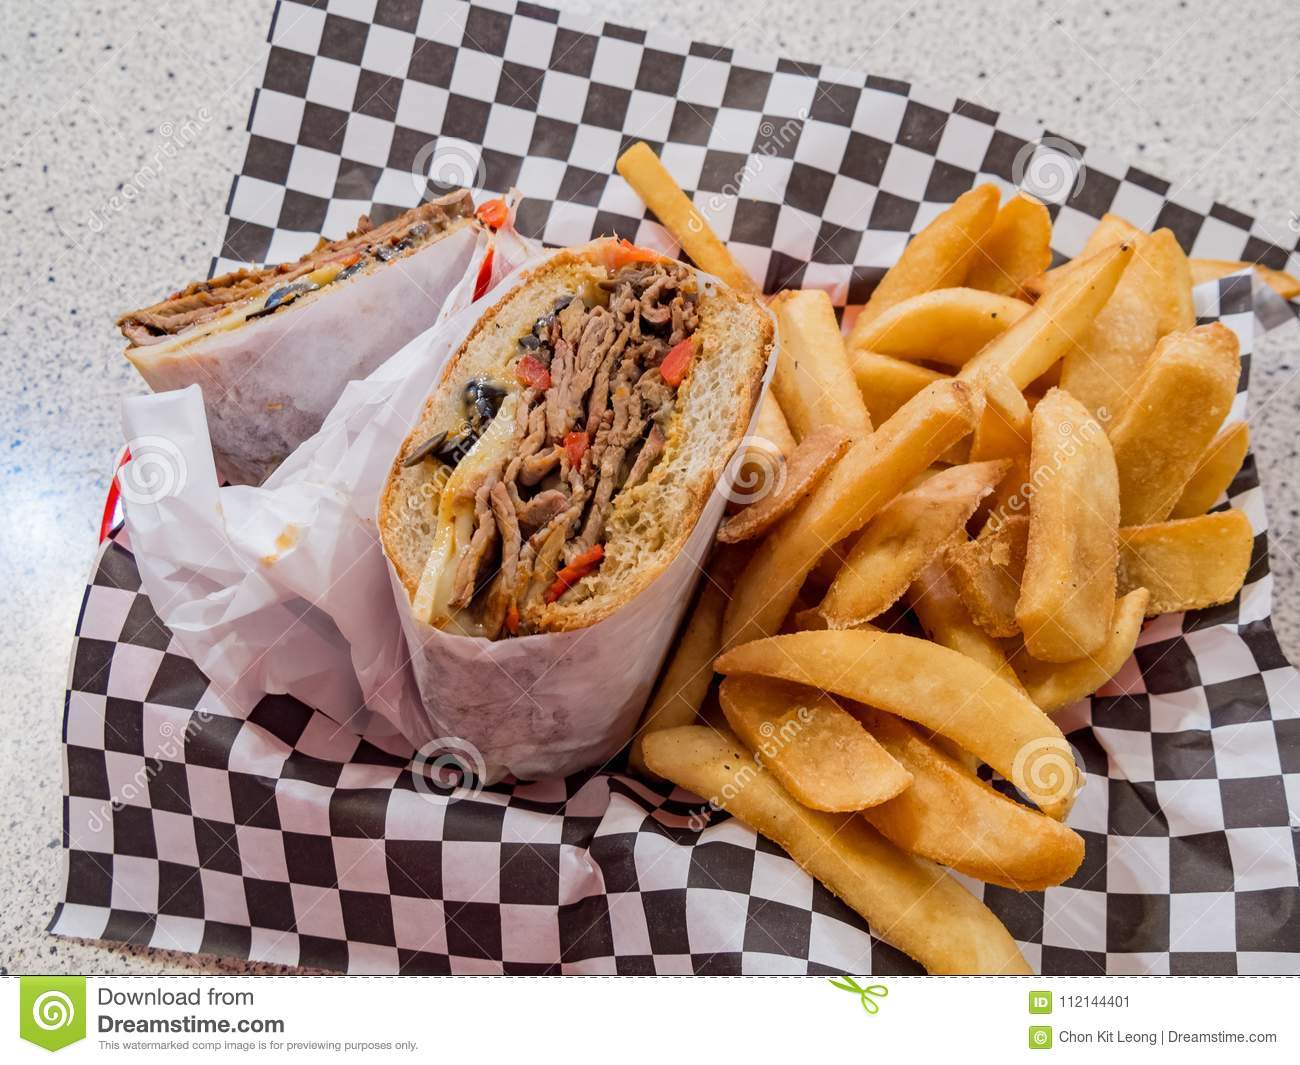 Close up of Tri-tip steak sandwich with french fries